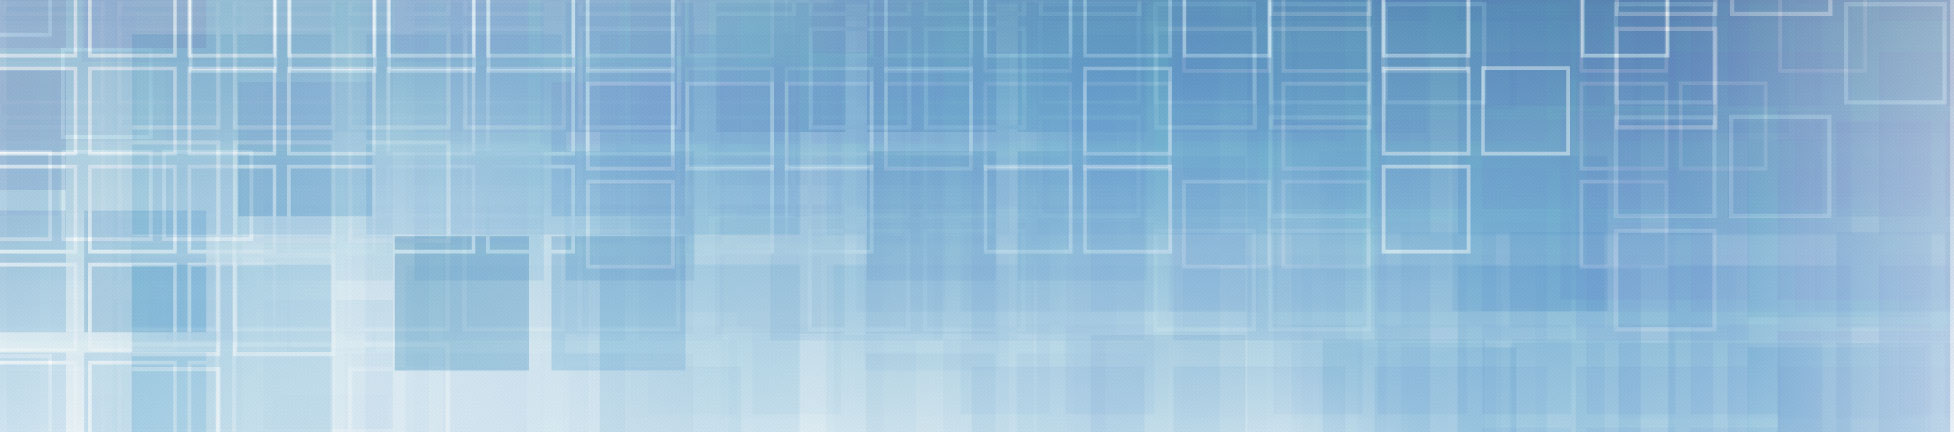 Banner Background Powerpoint Backgrounds For Free Powerpoint Templates